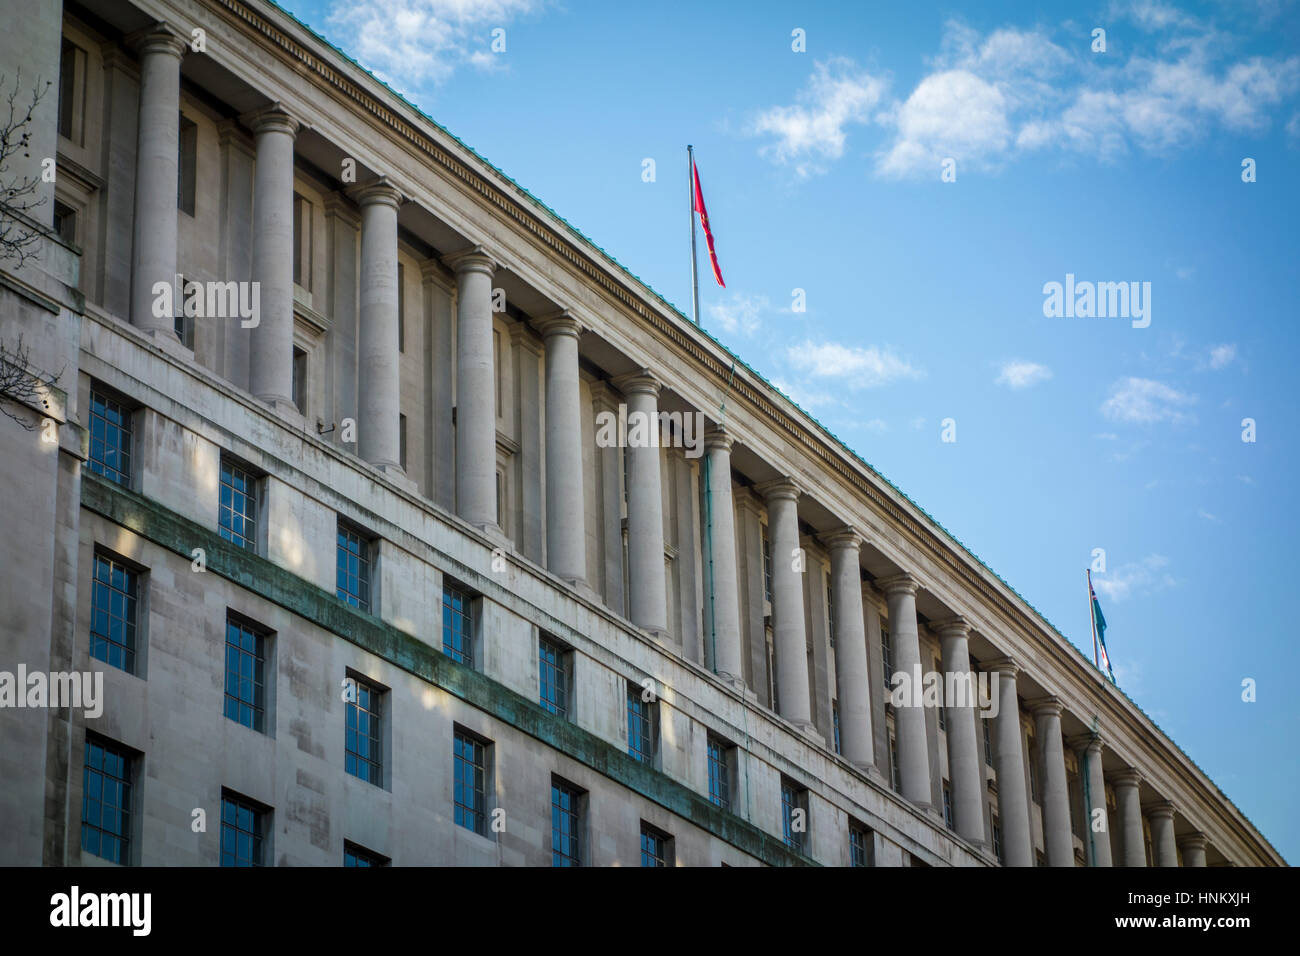 Ministry of Defence, main offices, Whitehall. Viewed from Victoria Embankment Gardens. London, UK - Stock Image